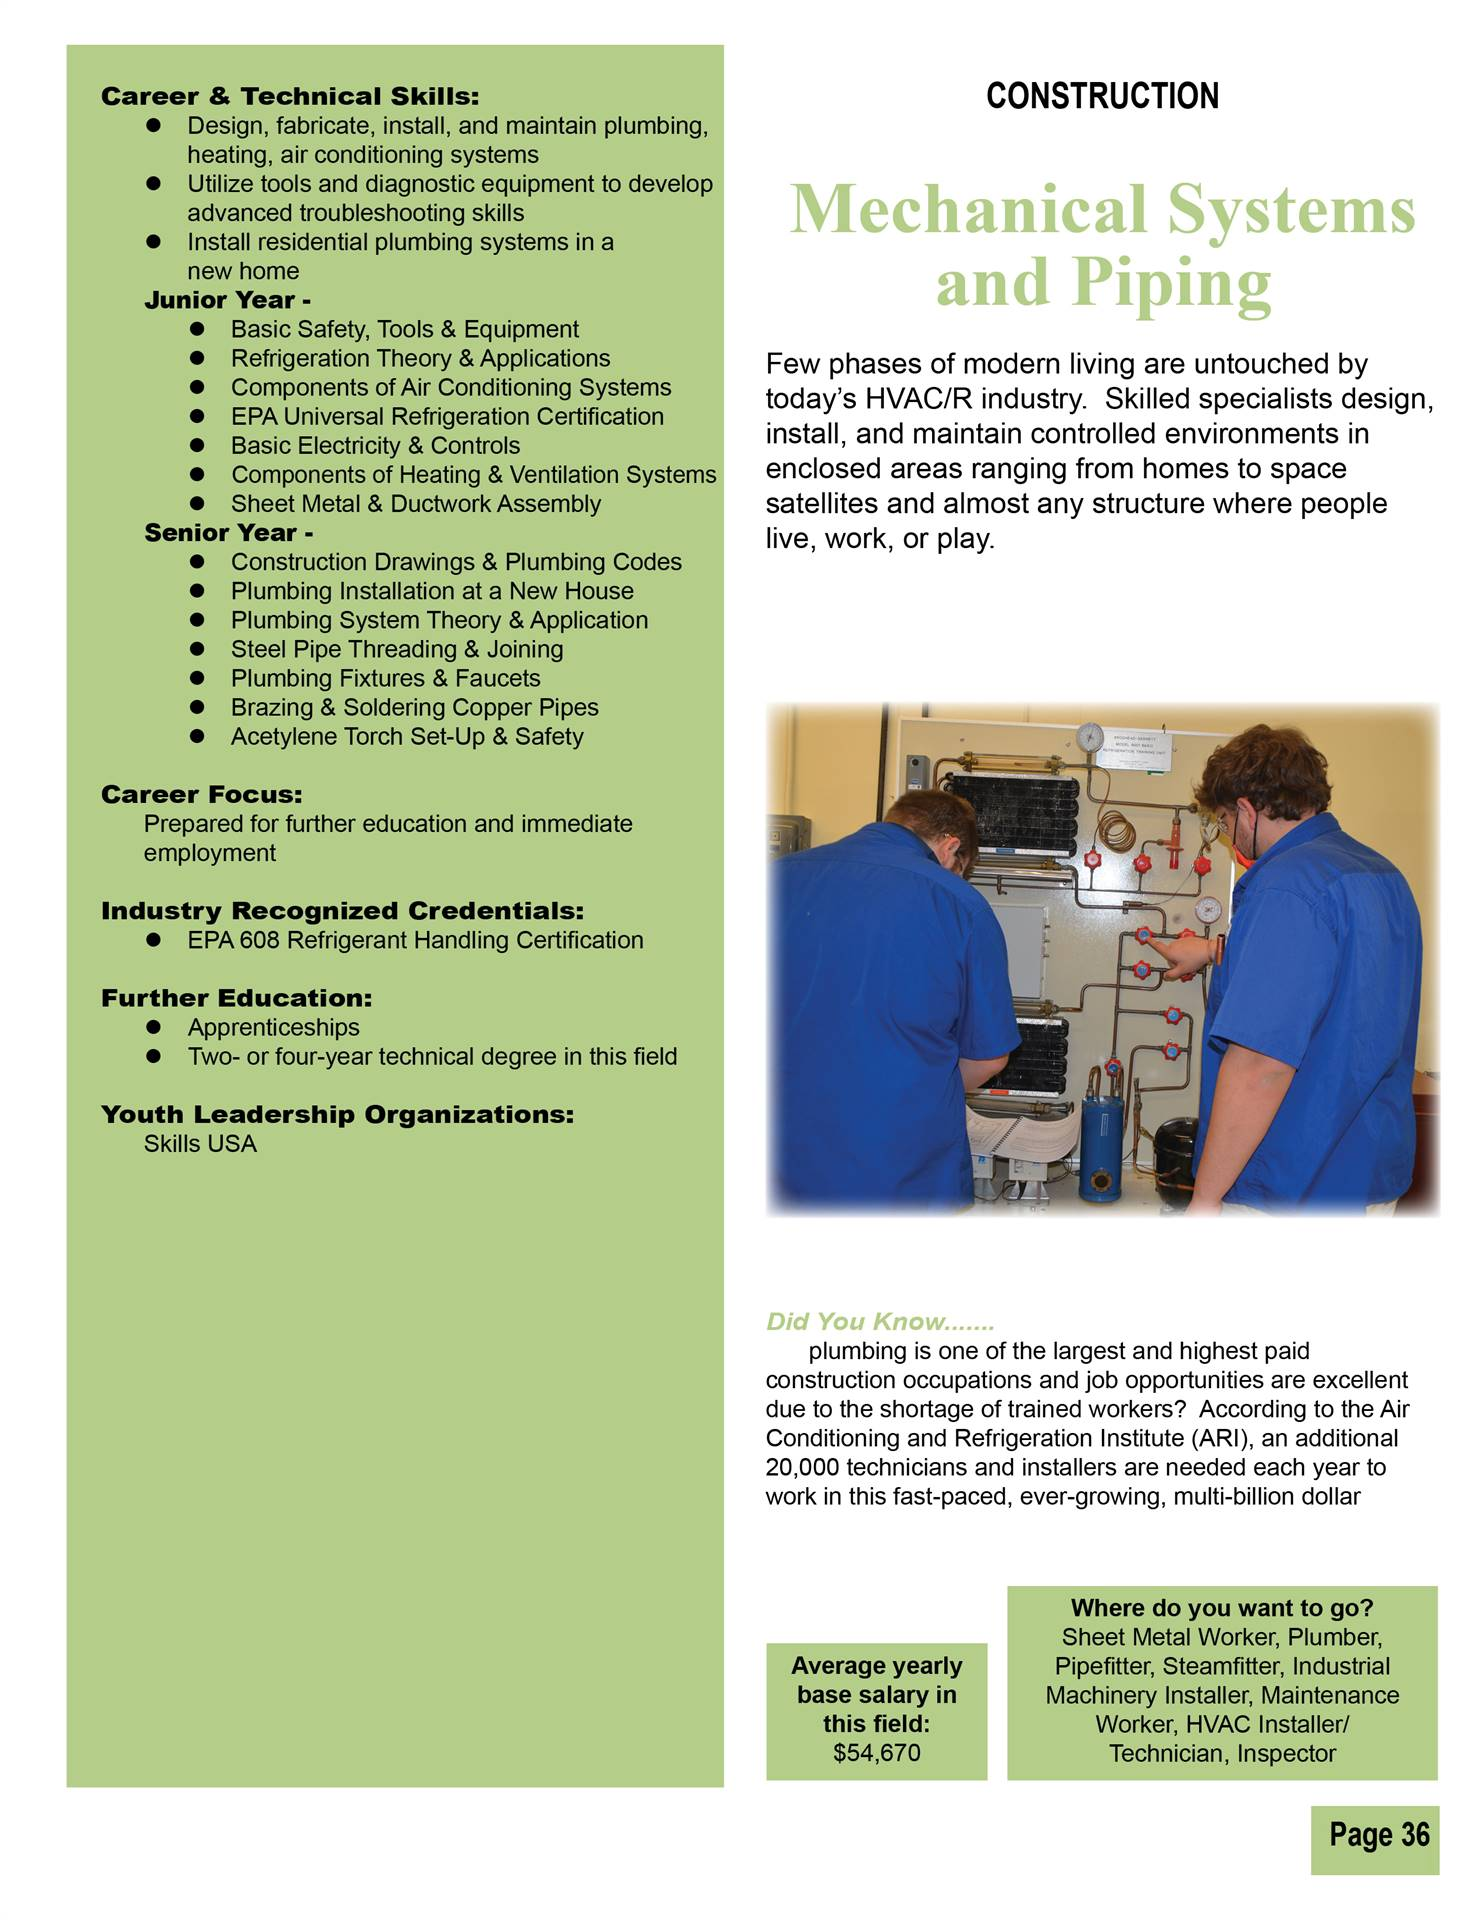 Mechanical Systems & Piping